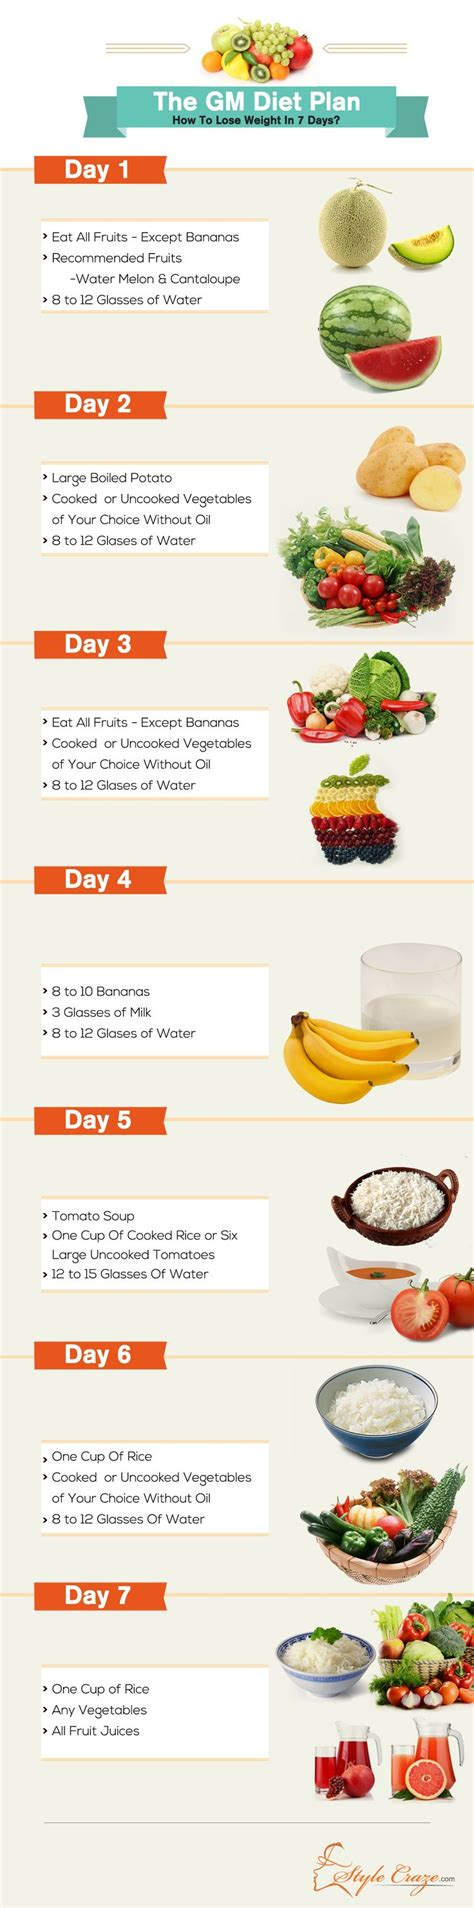 Detox Diet Plan For Weight Loss For One Week by The Gm Diet Plan How To Lose Weight In Just 7 Days